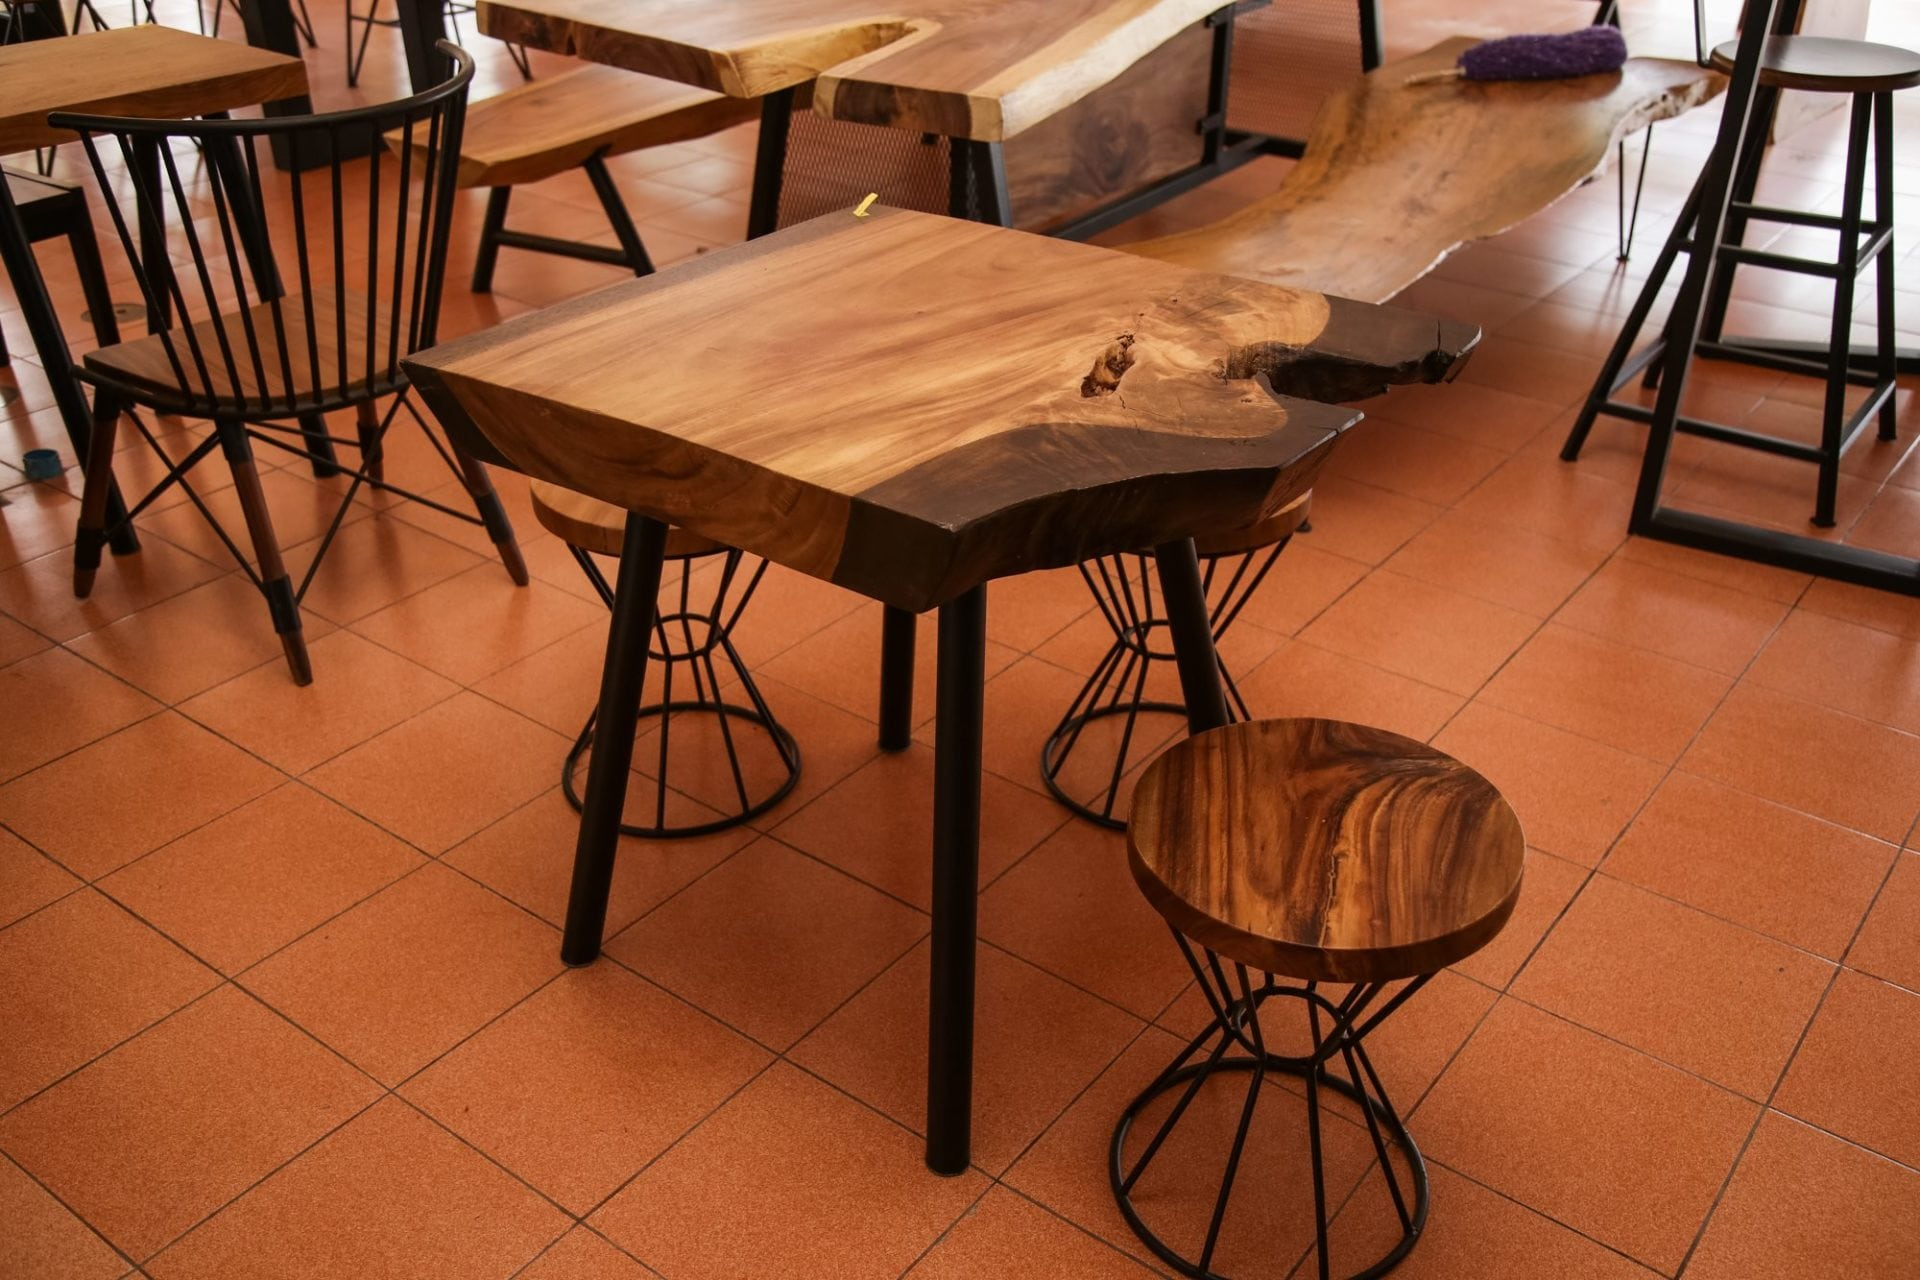 suar wood table and stools